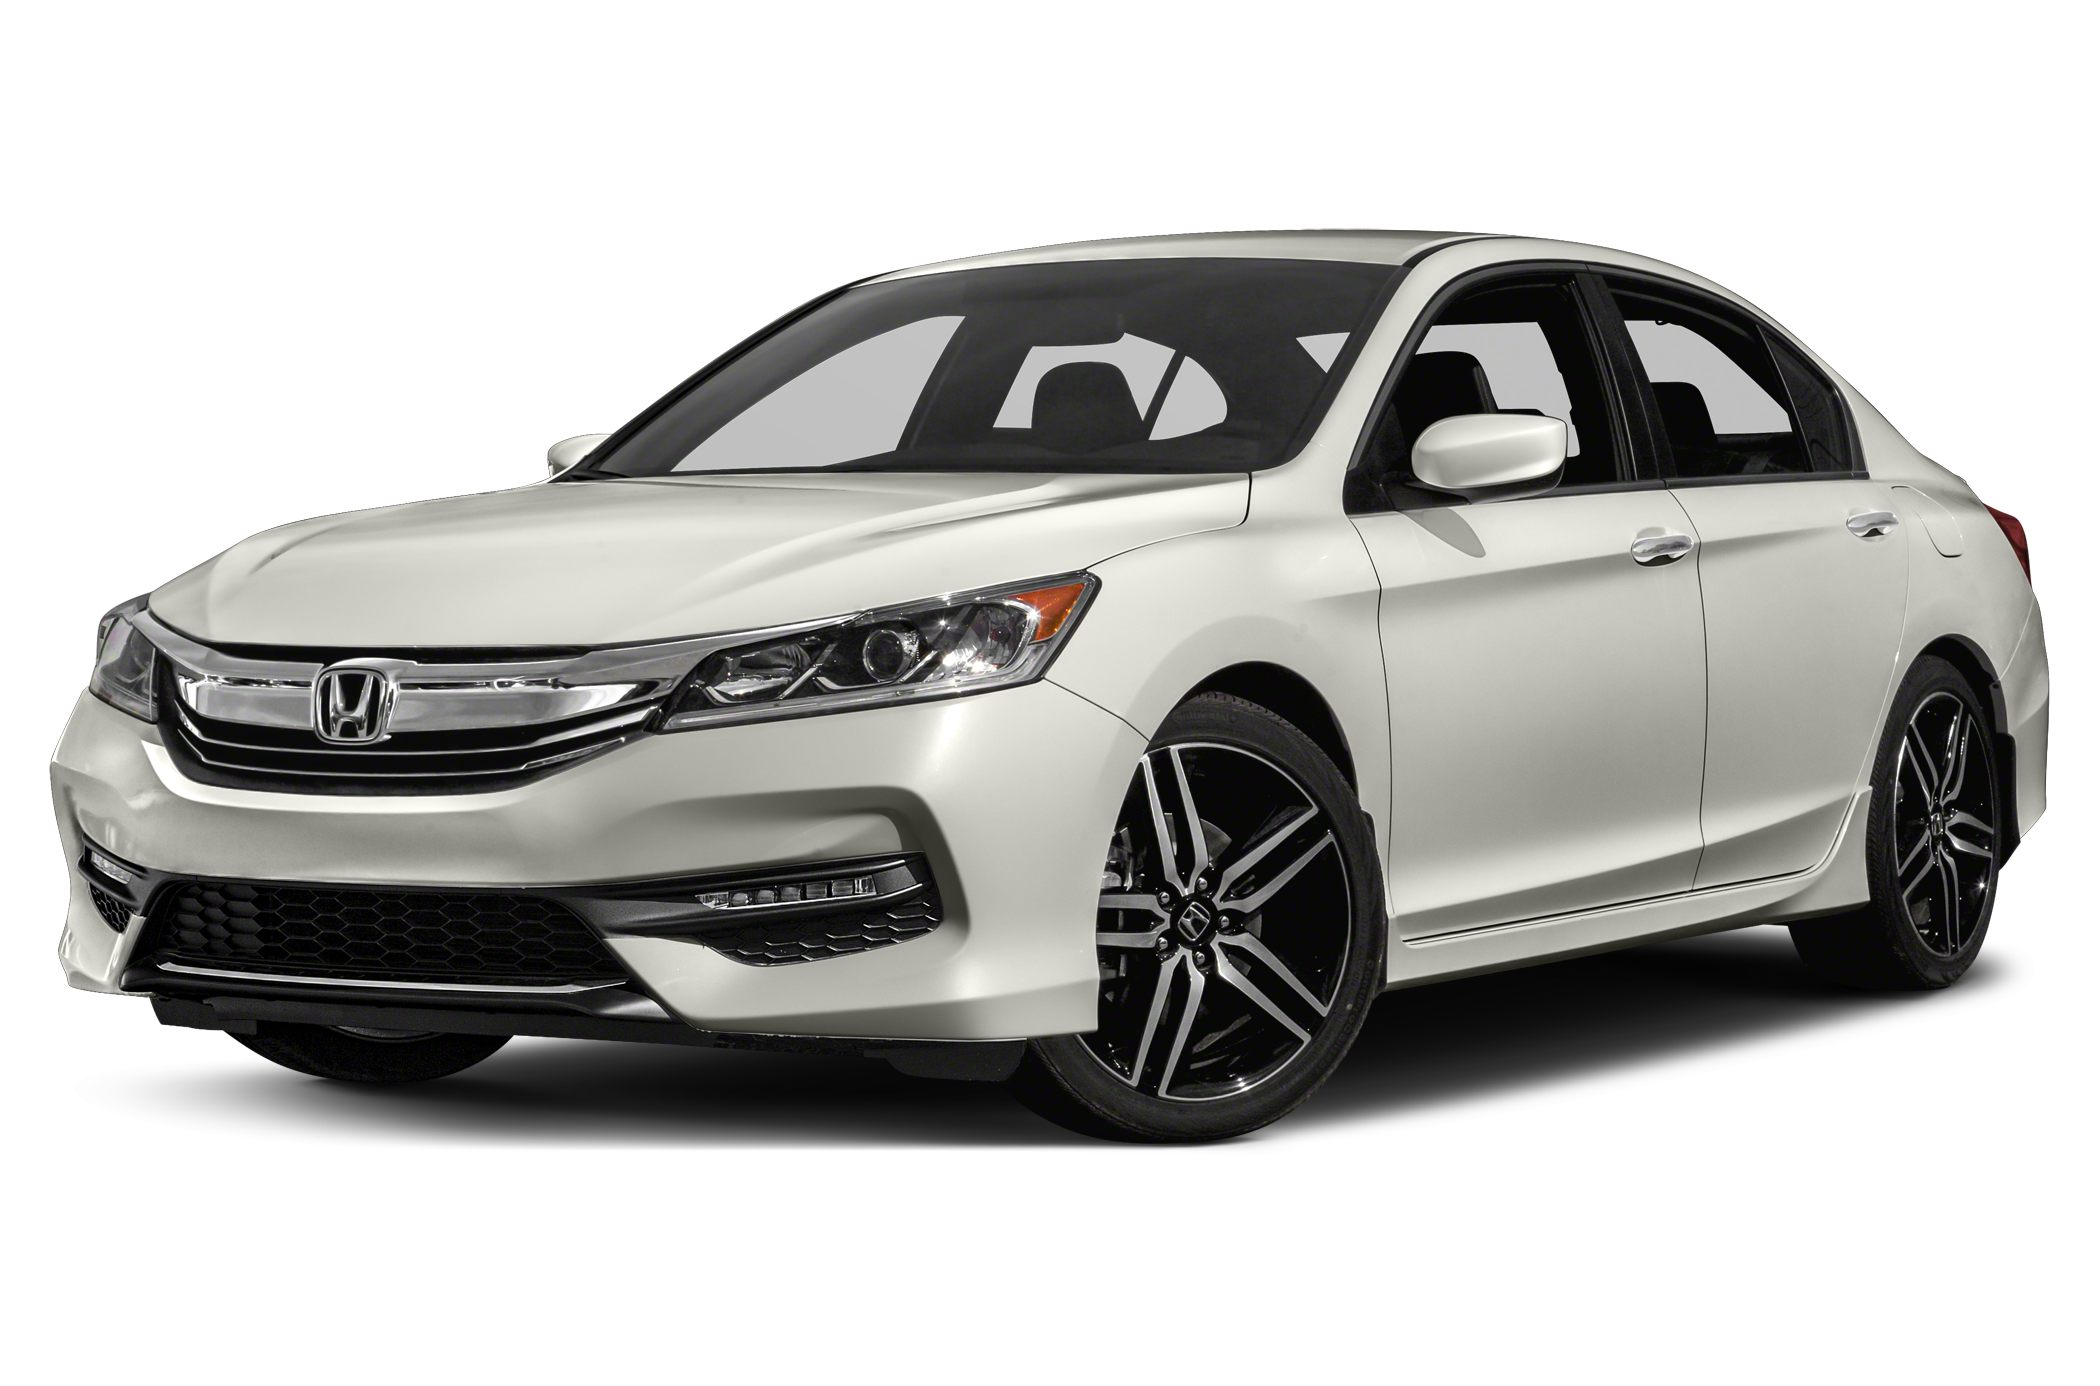 2017 Honda Accord Sport Its time for Classic of Texoma Ready to roll If youre looking for comf